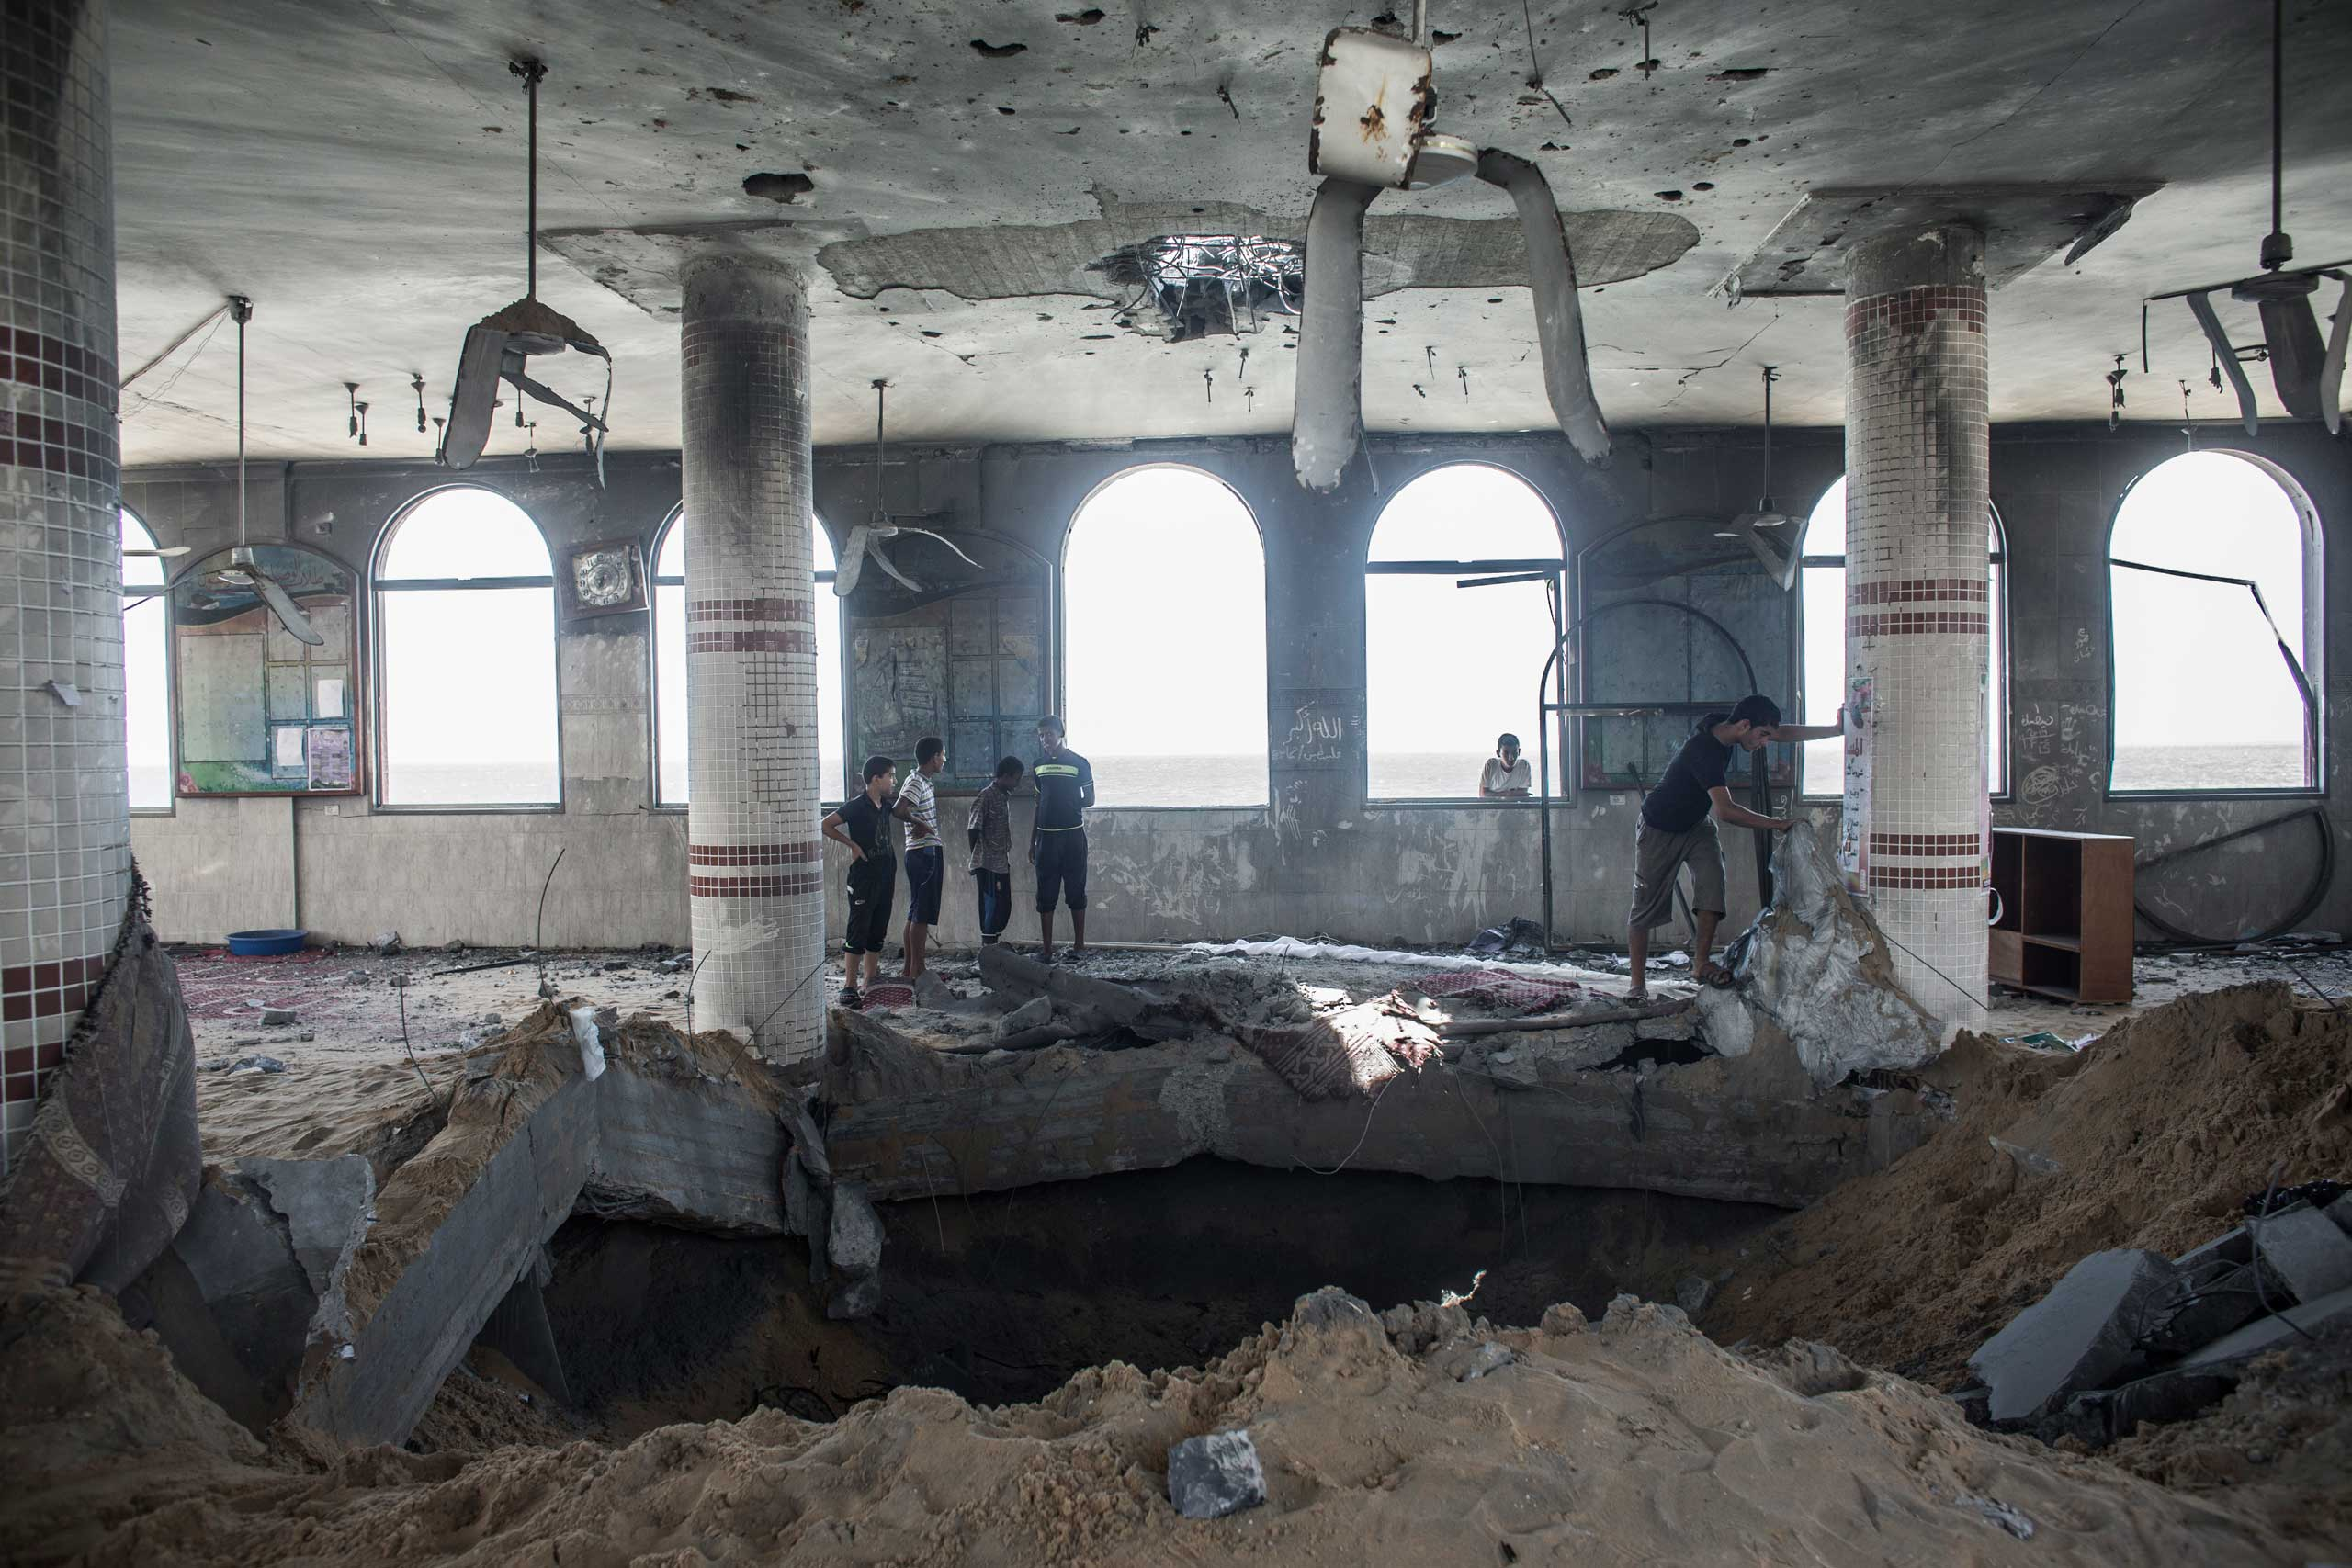 Palestinian boys inspect the damage in a mosque that was destroyed overnight by an Israeli airstrike in Deir Al Balah, central Gaza Strip, July 14, 2014.